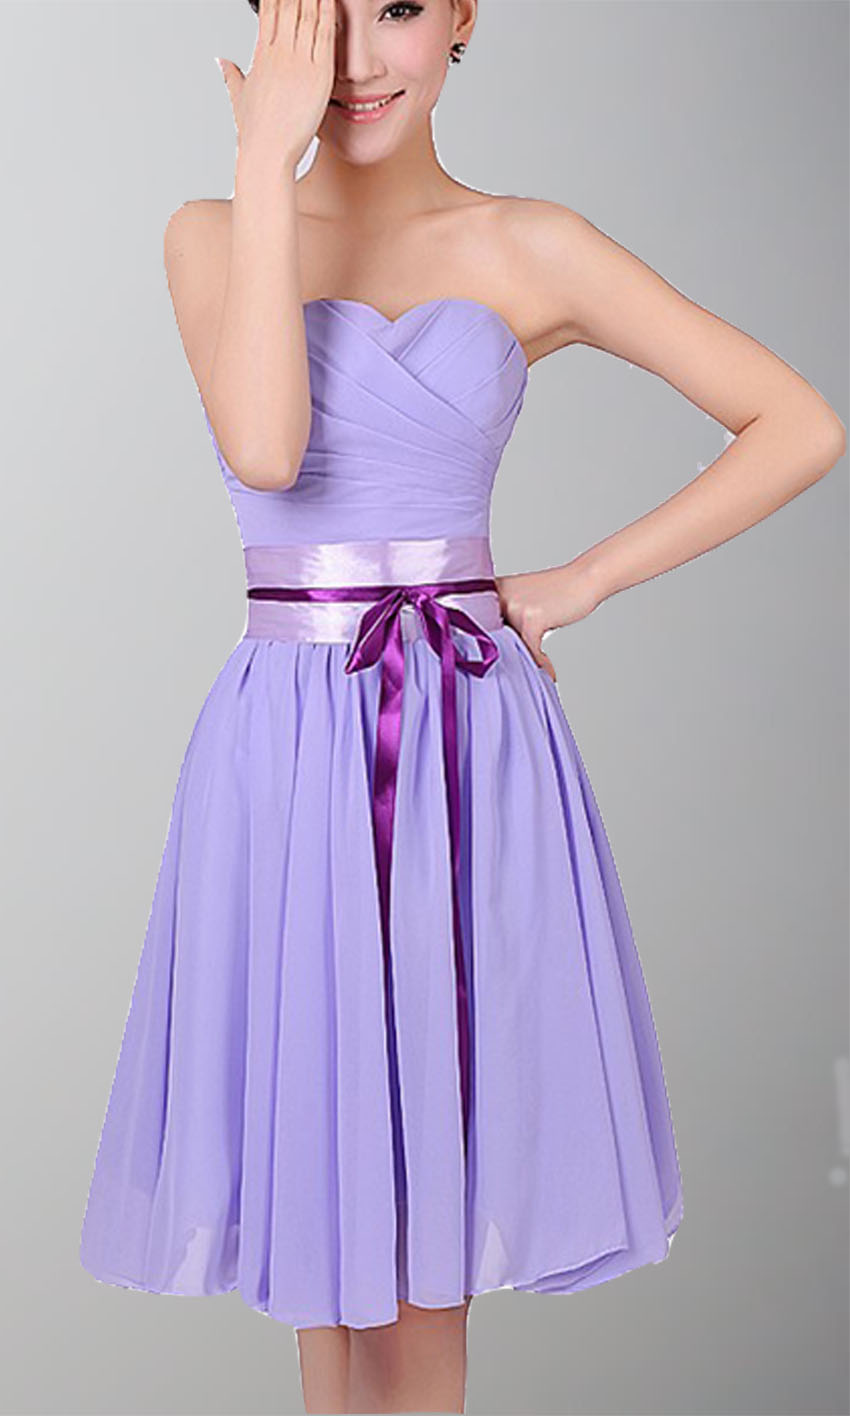 Strapless Sweetheart Short Chiffon Bridesmaid Dresses KSP140 [KSP140] - £77.00 : Cheap Prom Dresses Uk, Bridesmaid Dresses, 2014 Prom & Evening Dresses, Look for cheap elegant prom dresses 2014, cocktail gowns, or dresses for special occasions? kissprom.co.uk offers various bridesmaid dresses, evening dress, free shipping to UK etc.